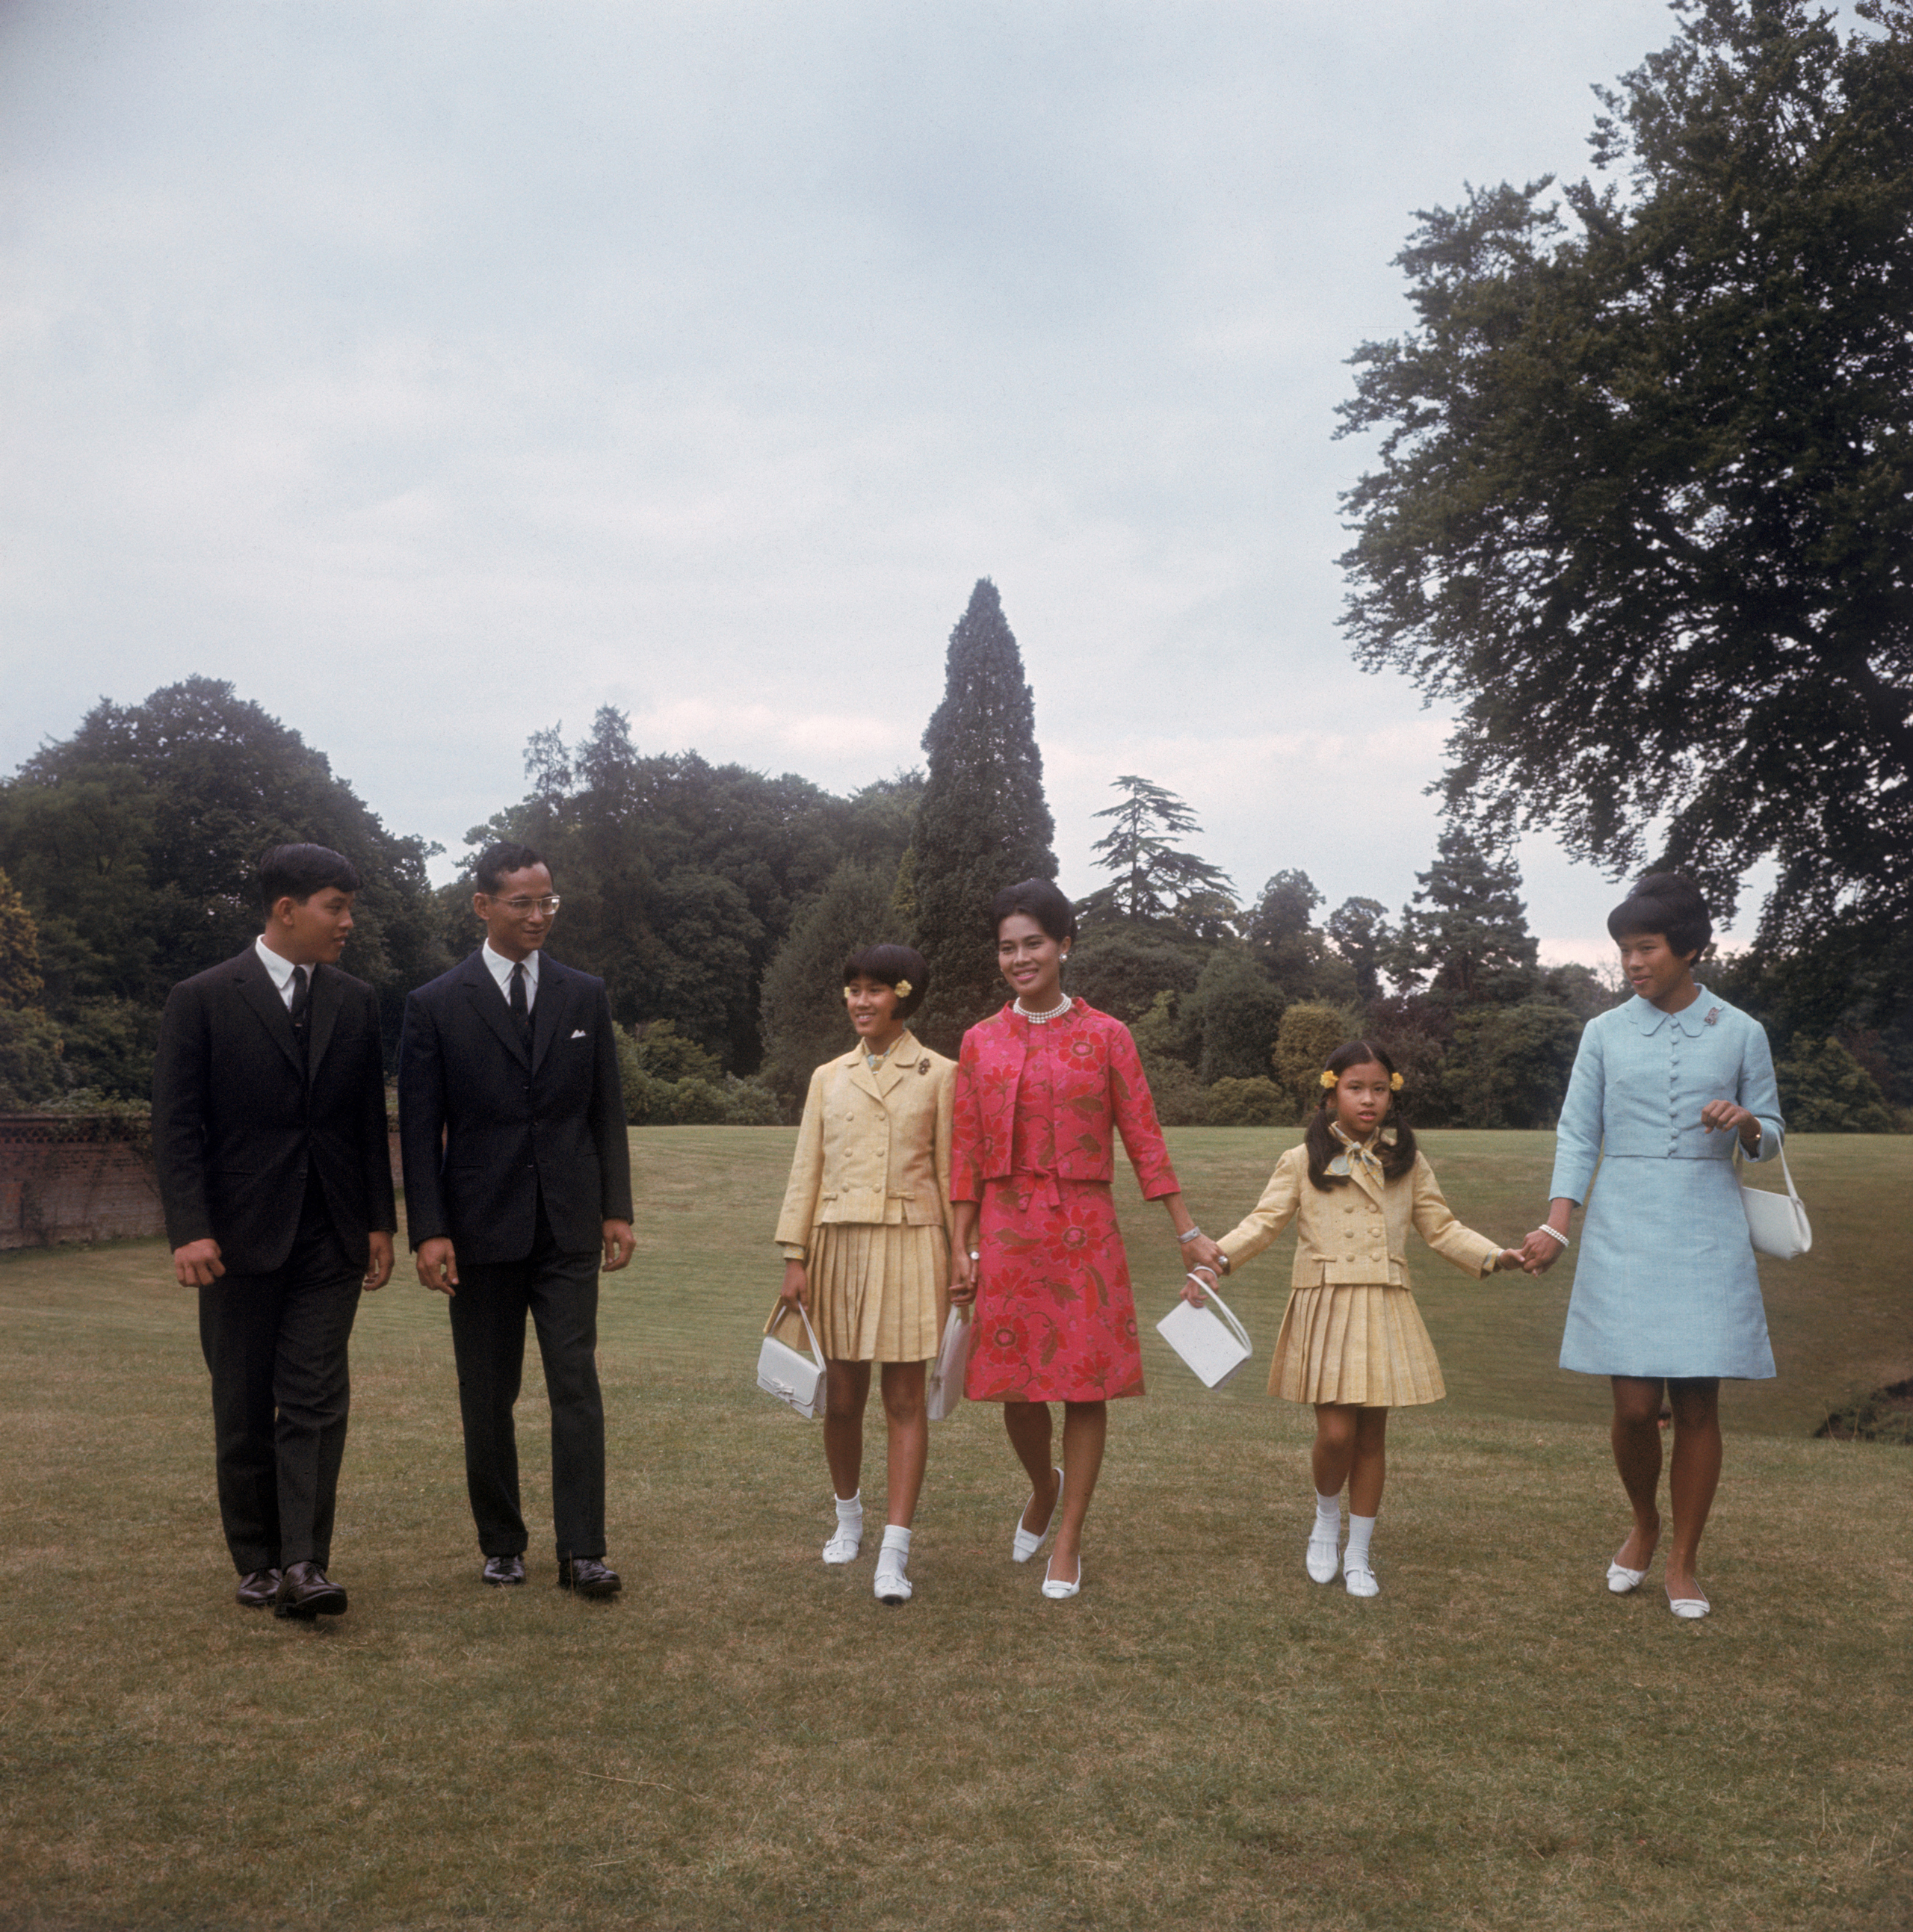 King Bhumibol Adulyadej and Queen Sirikit  with their children at King's Beeches, their private residence in Sunninghill, Berkshire, July 27, 1966.